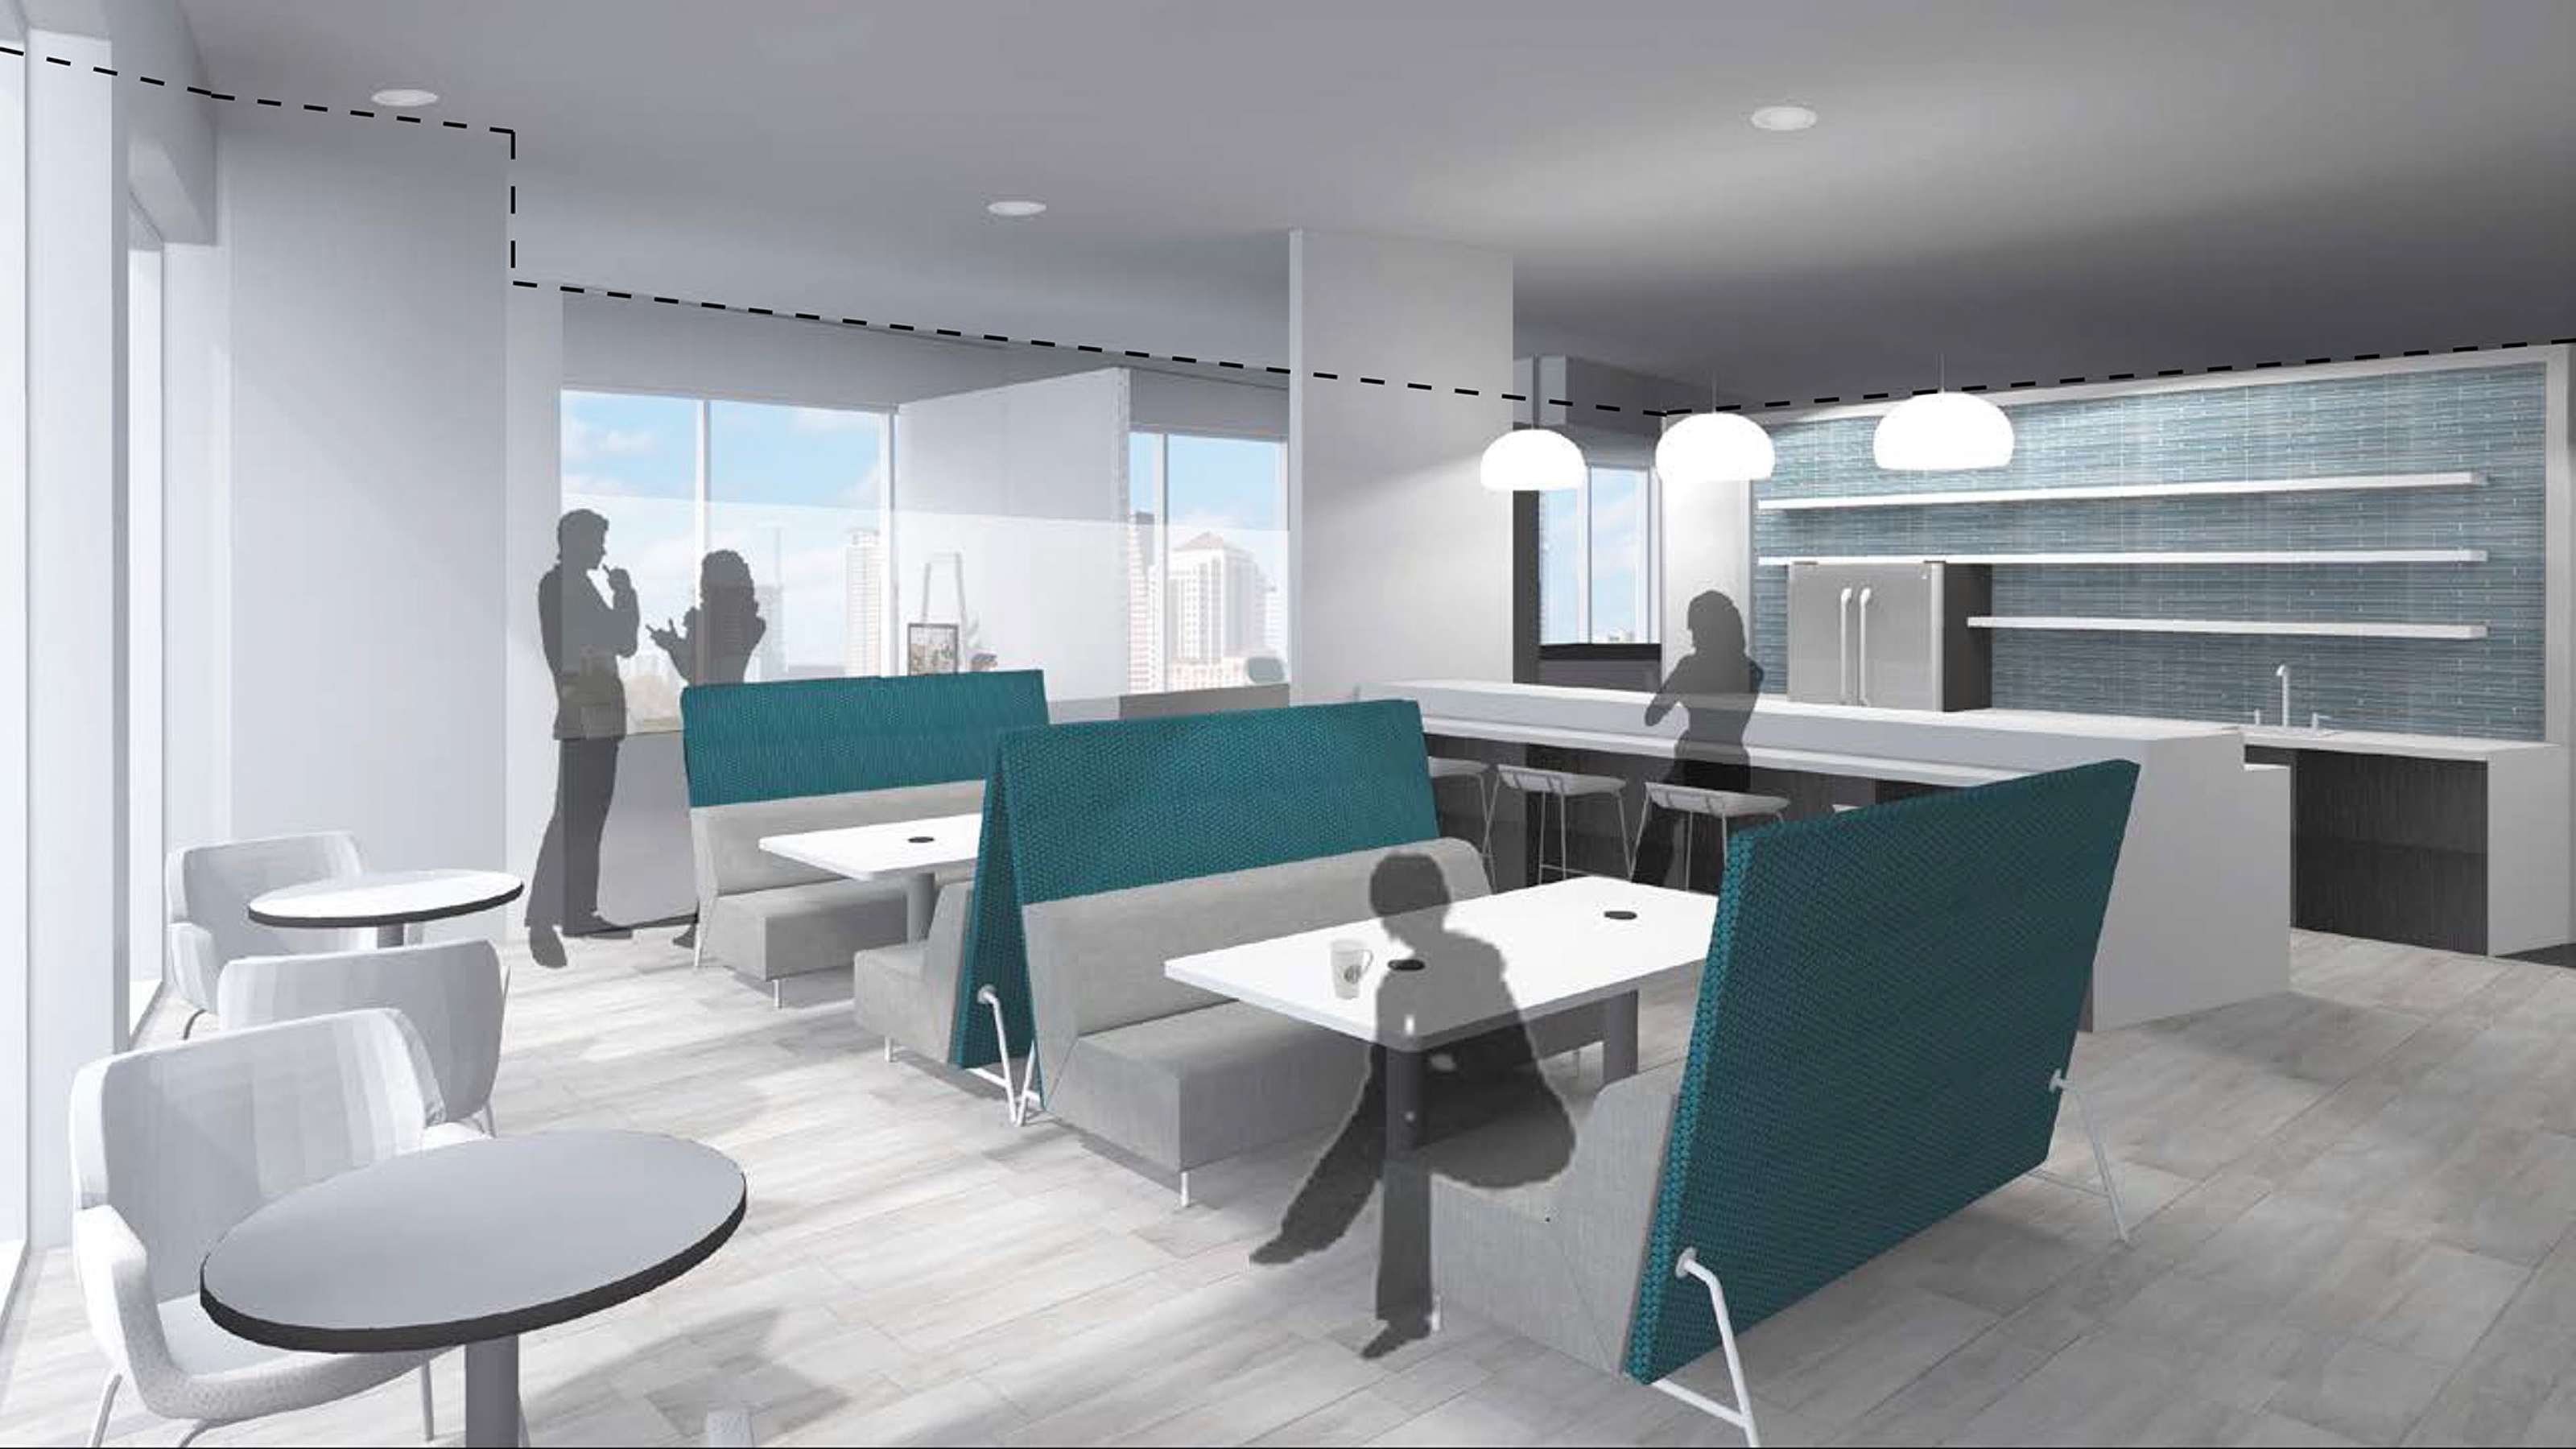 Next office interior design competition steelcase - University of maryland interior design ...